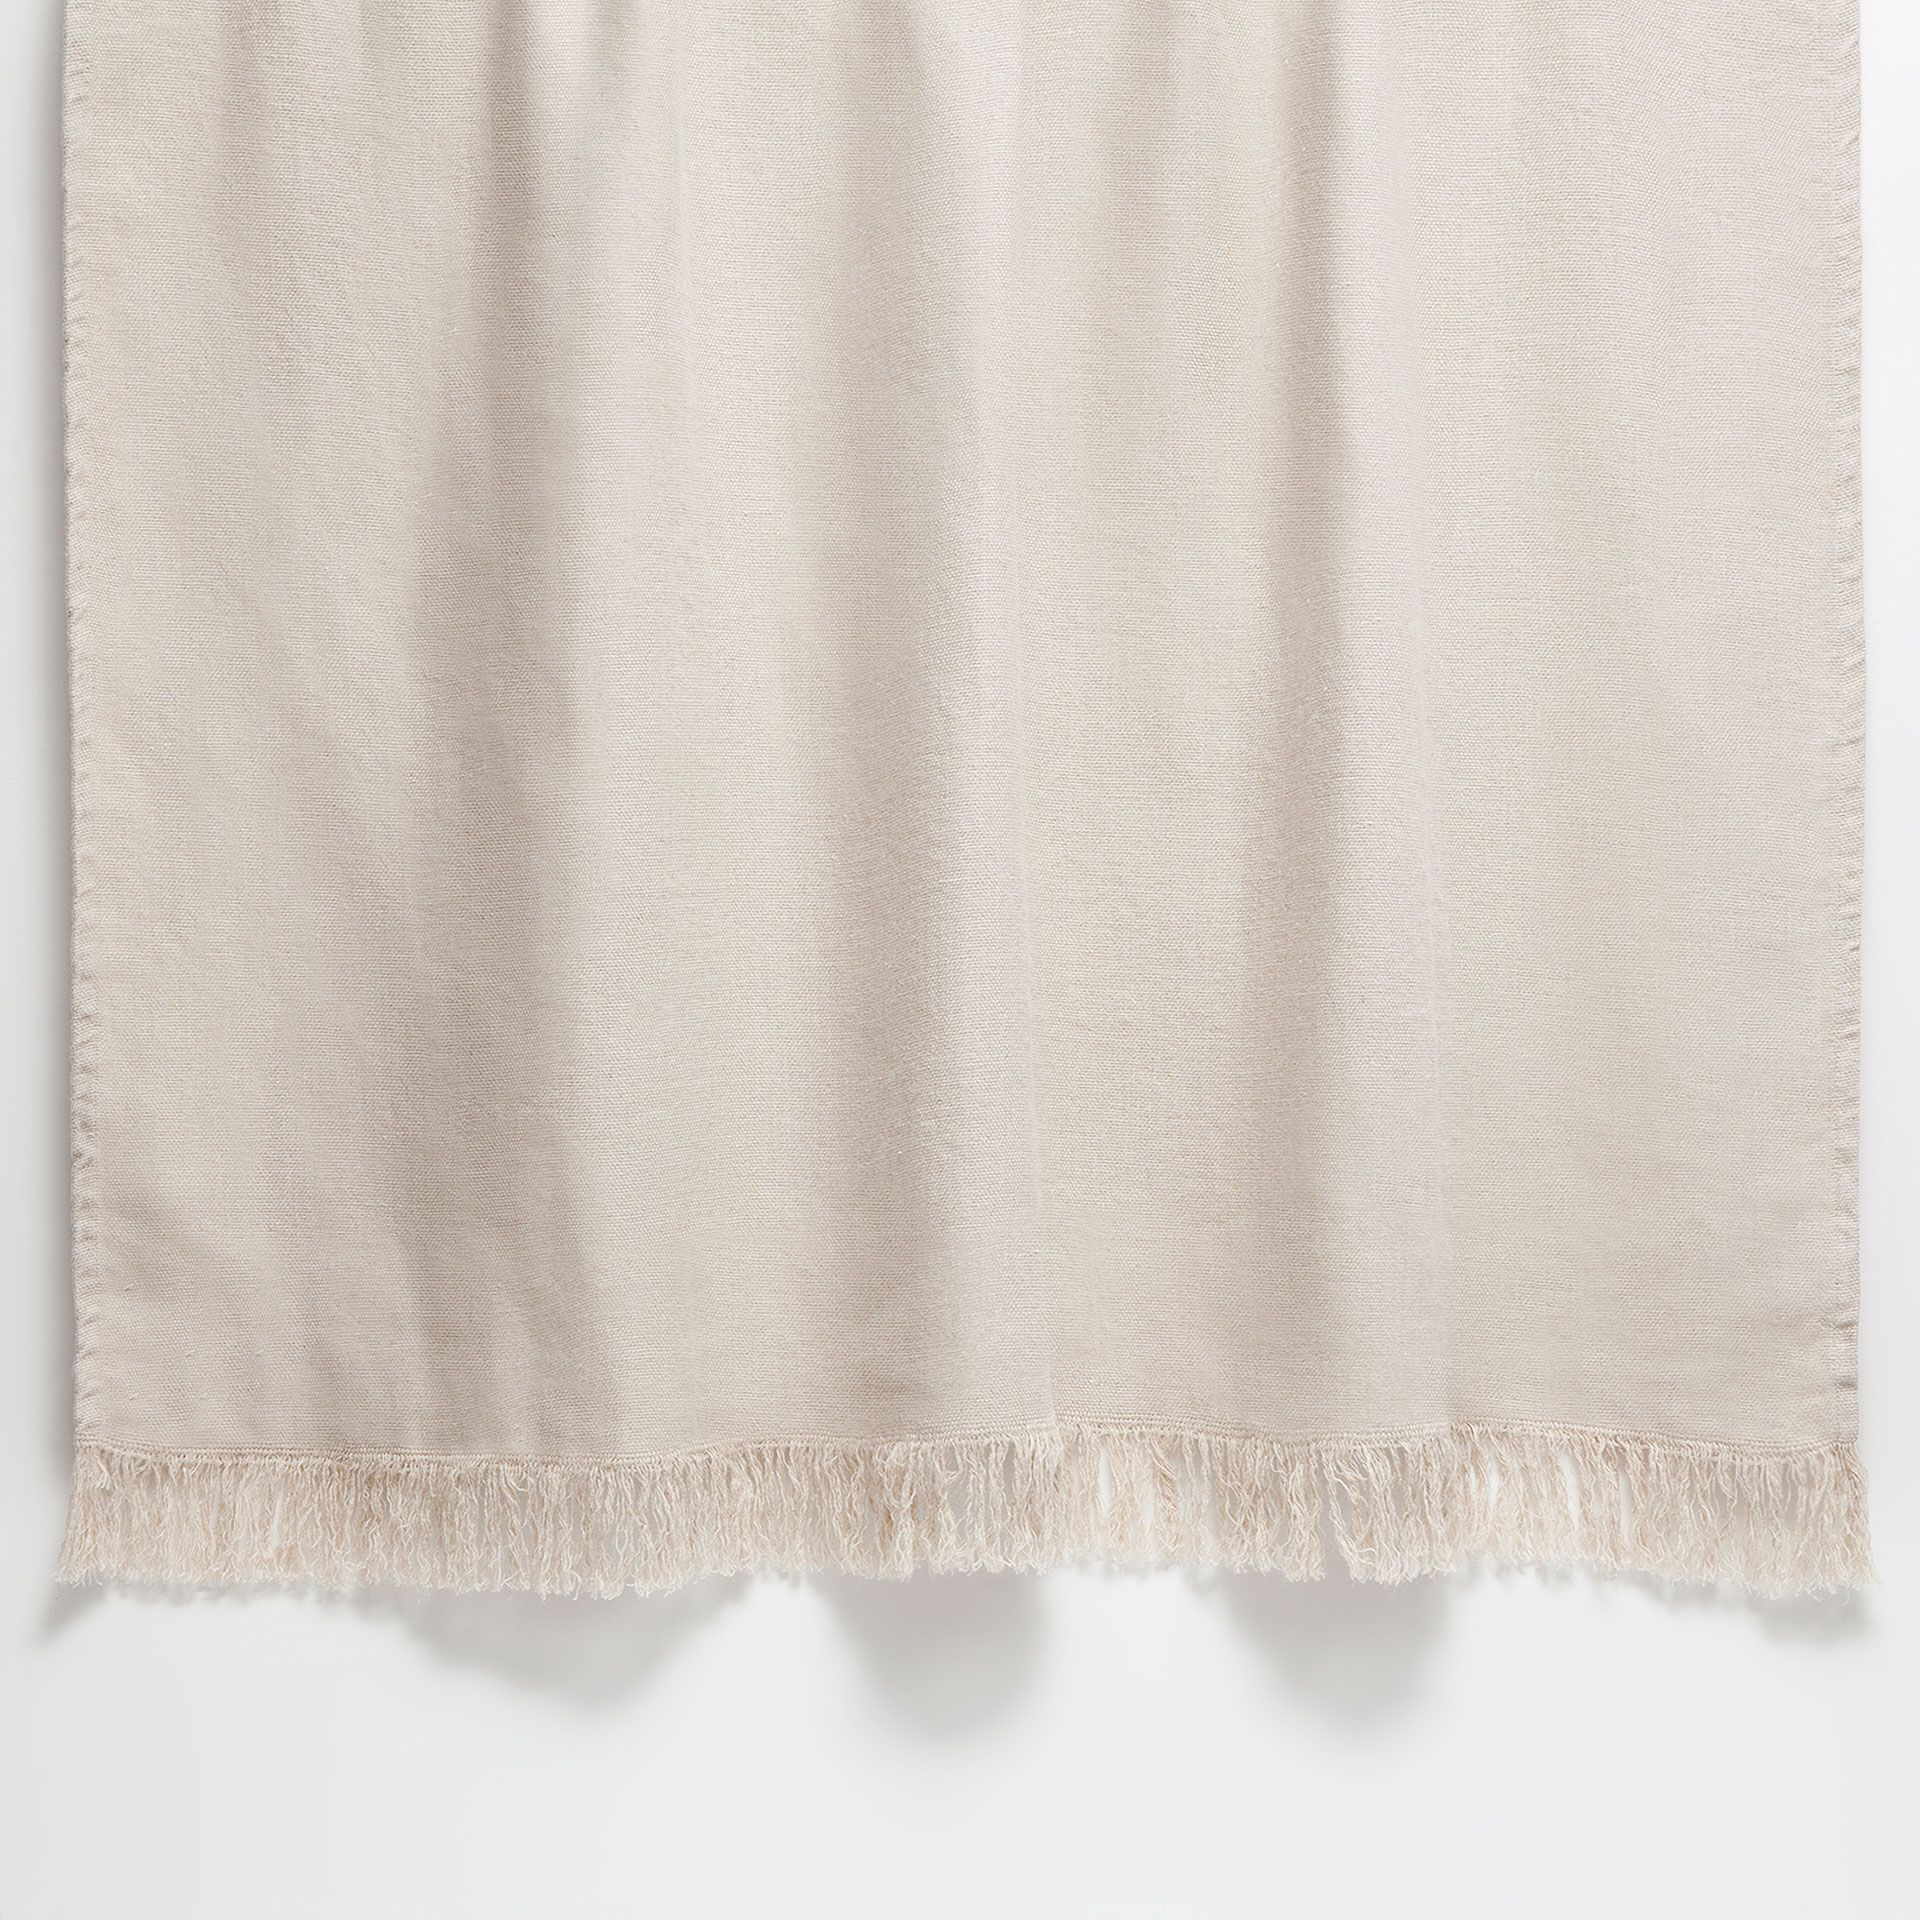 Natural colour fringed linen blanket - Blankets - Bedroom | Zara Home United Kingdom